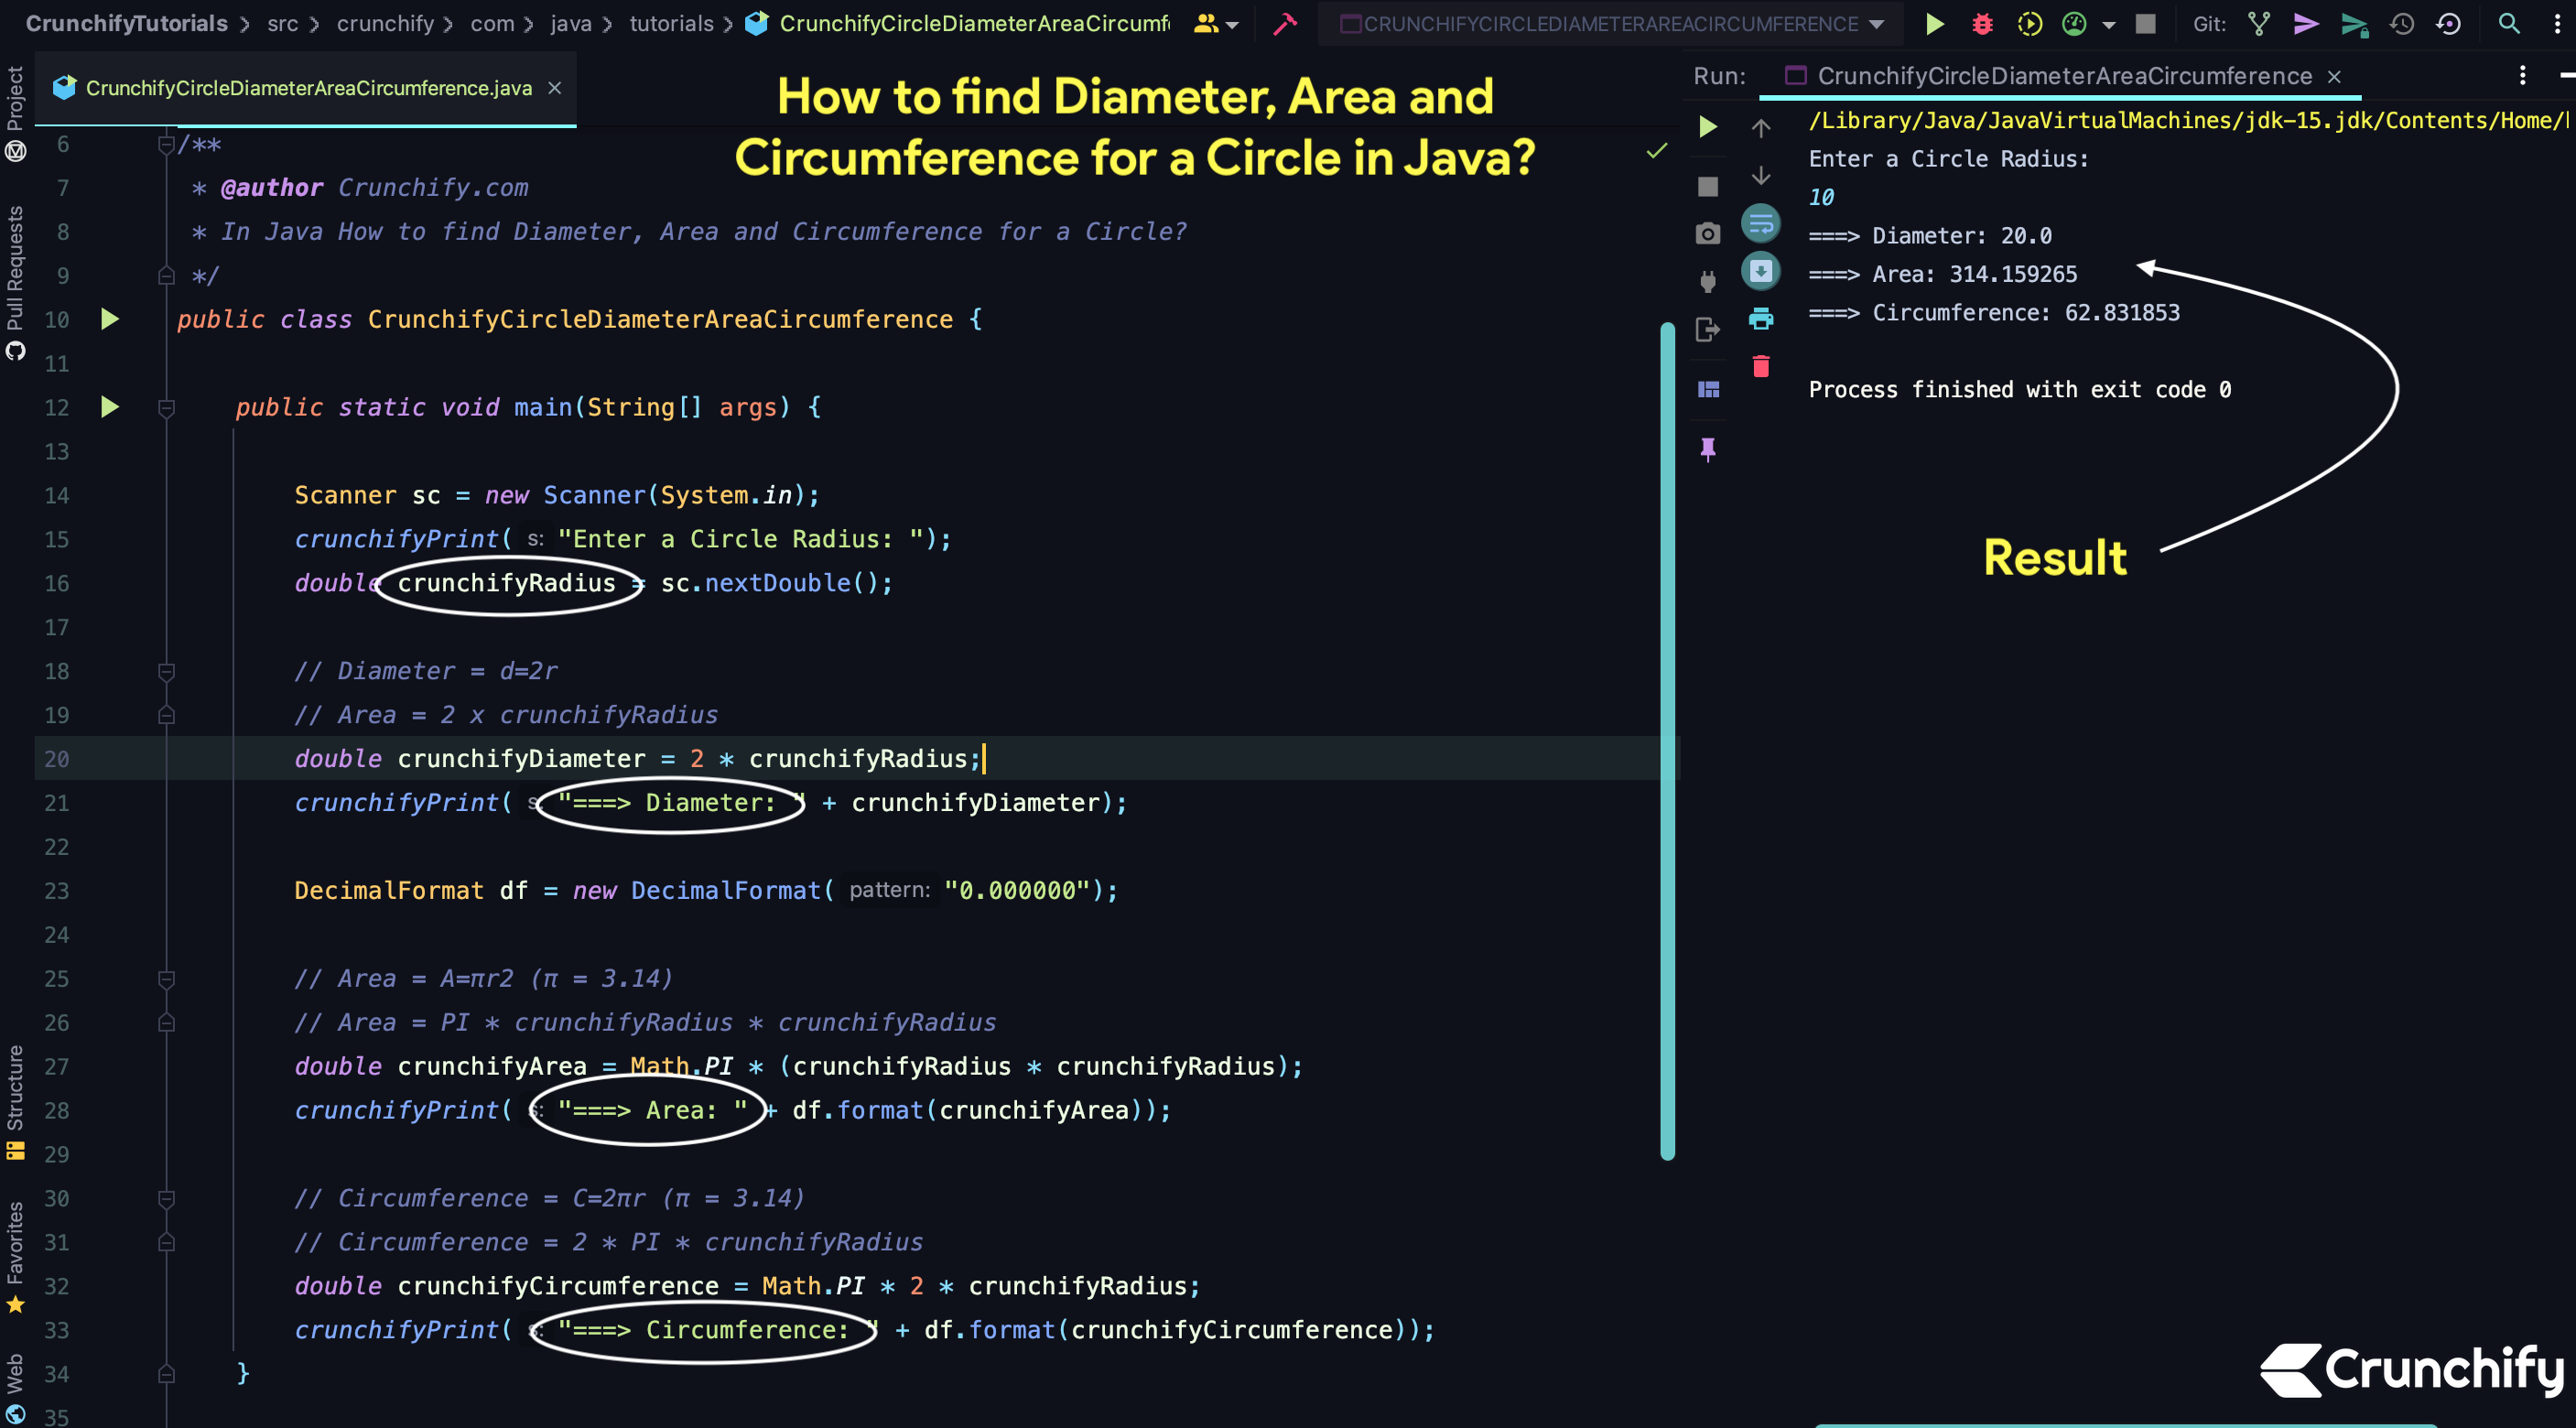 How to find Diameter, Area and Circumference for a Circle in Java?